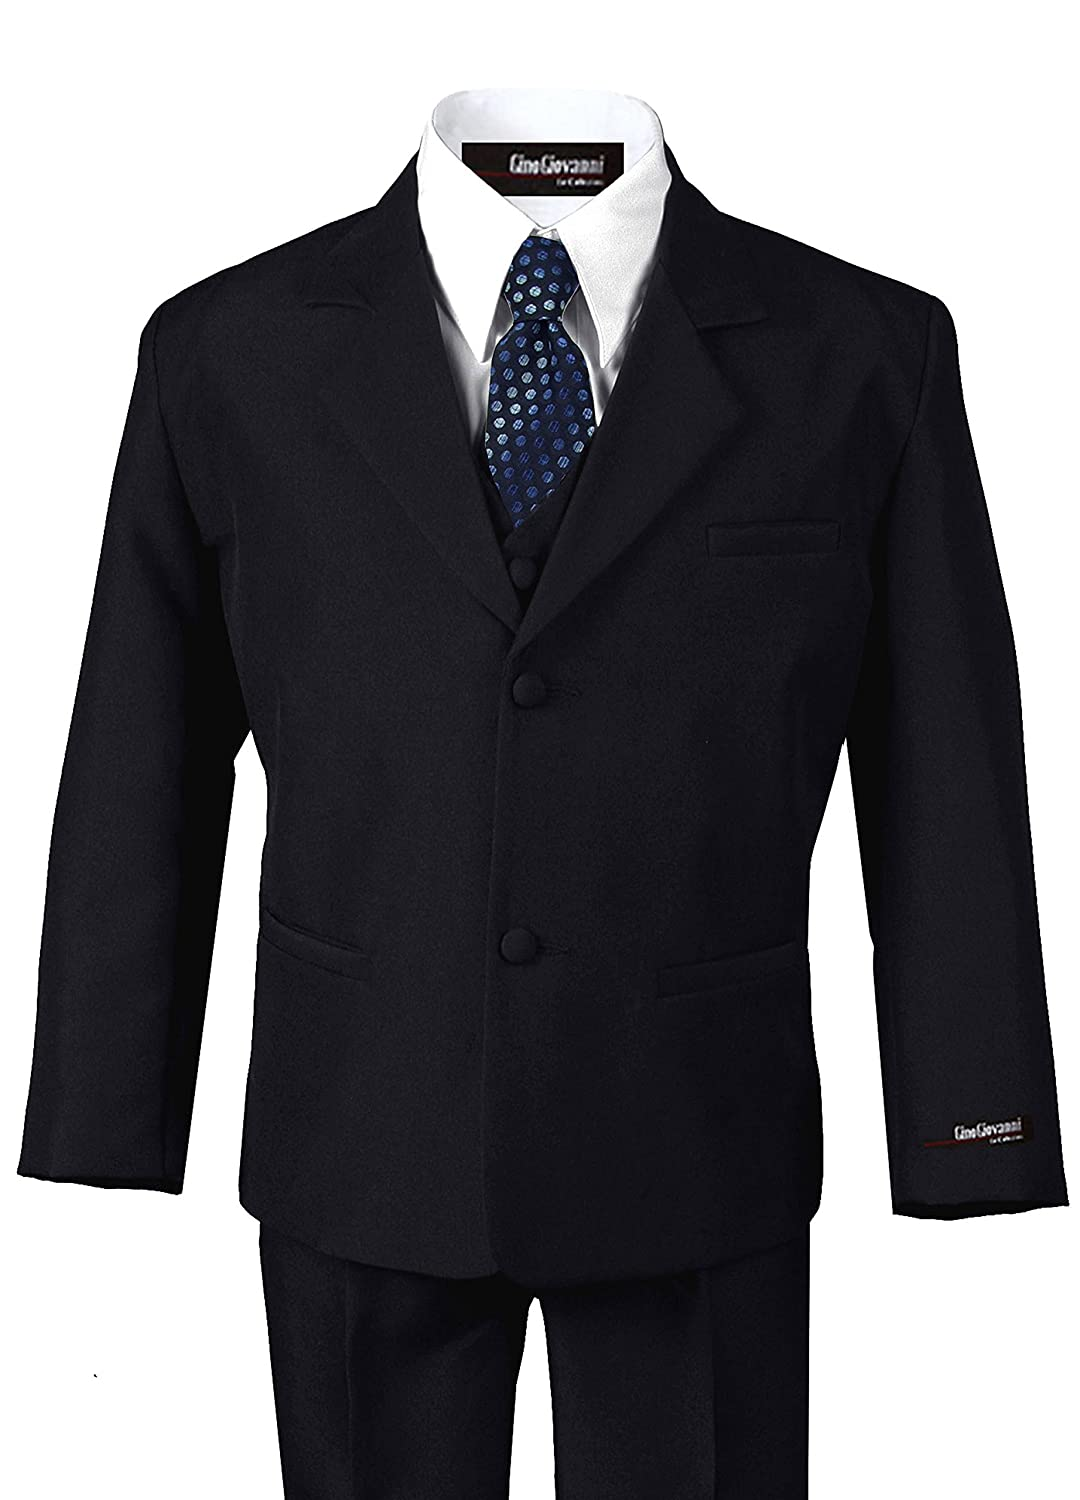 GINO GIOVANNI Brand Formal Boy Suit From Baby to Teen